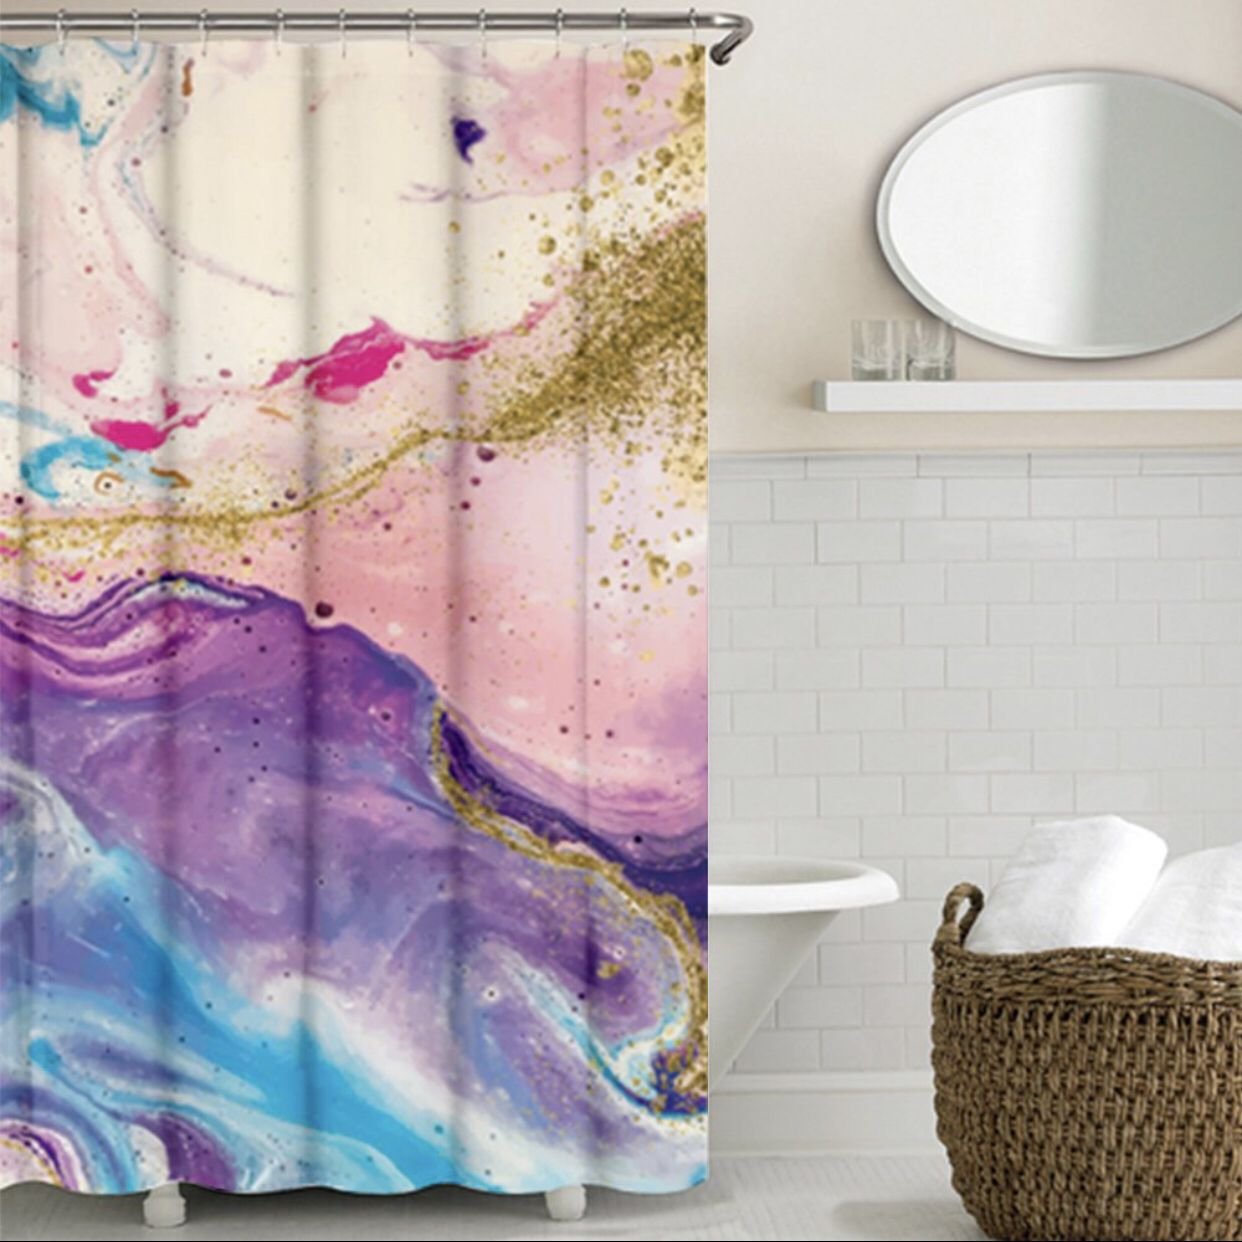 Watercolor Shower Curtain Purple And Gold Bathroom Decor Watercolor Shower Curtain Purple Shower Curtain Gold Bathroom Decor